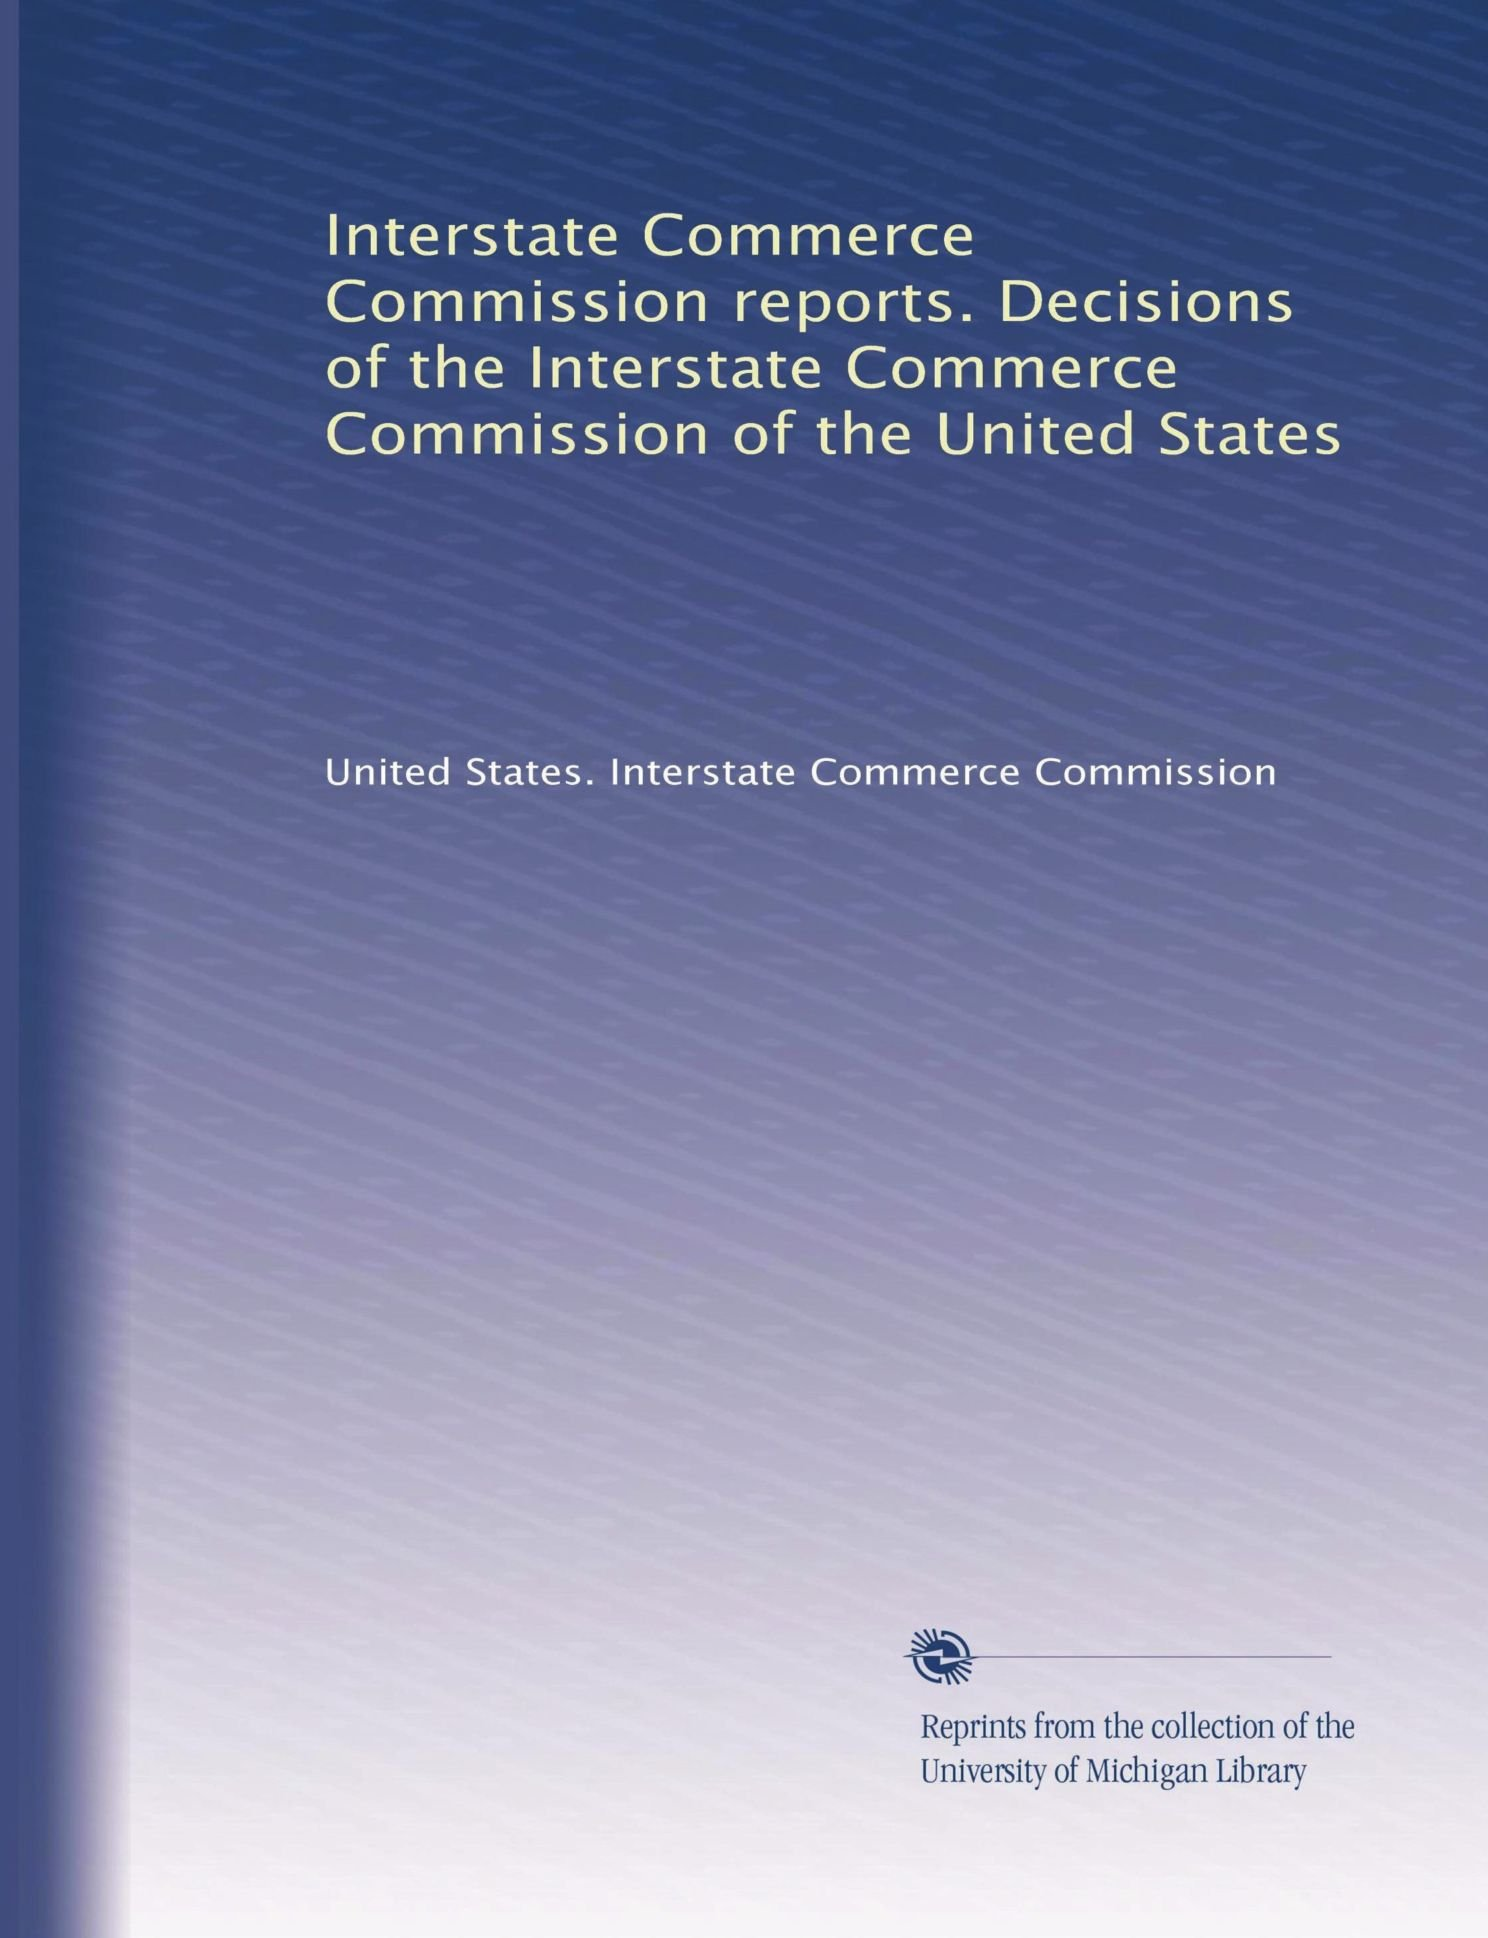 Interstate Commerce Commission reports. Decisions of the Interstate Commerce Commission of the United States (Volume 6) ebook